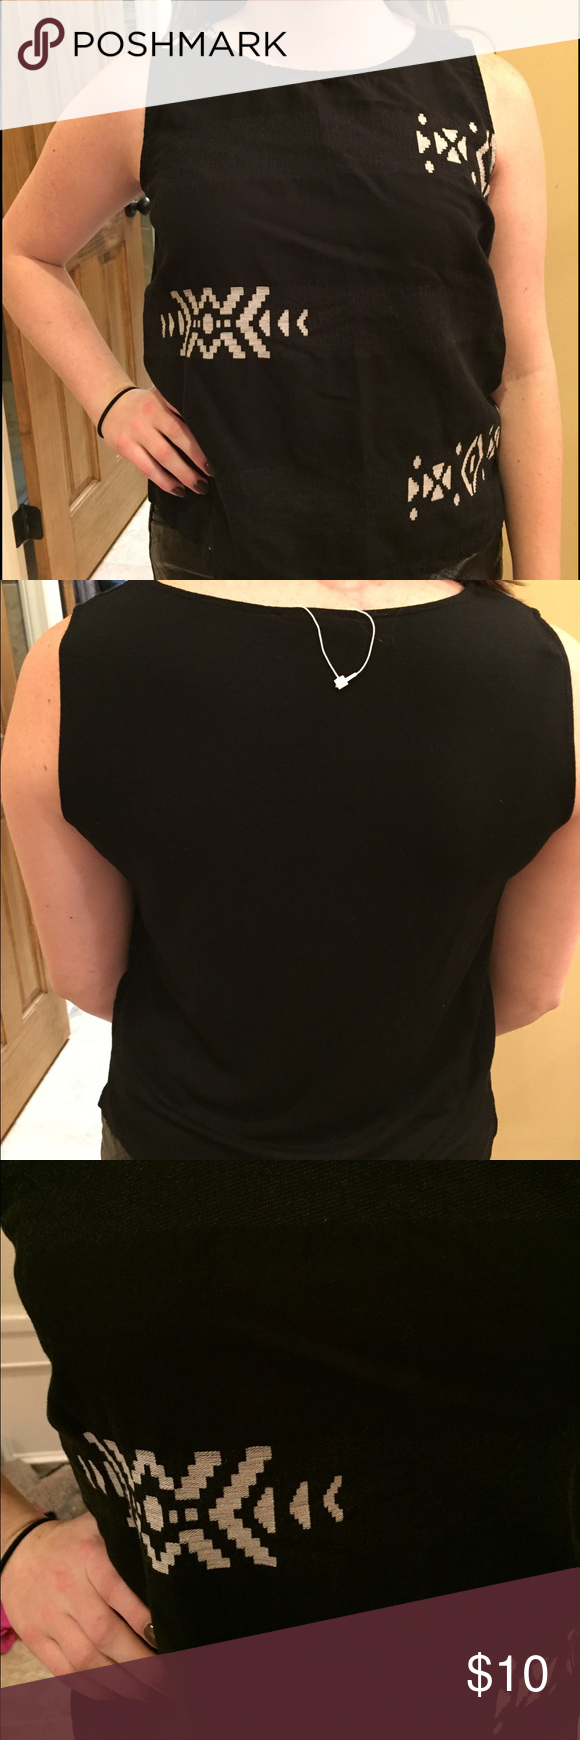 Eileen Fisher Black Tank NWT never been worn! tag ribbon still on but actual tag came off during a move. black with white patches. Eileen Fisher Tops Tank Tops